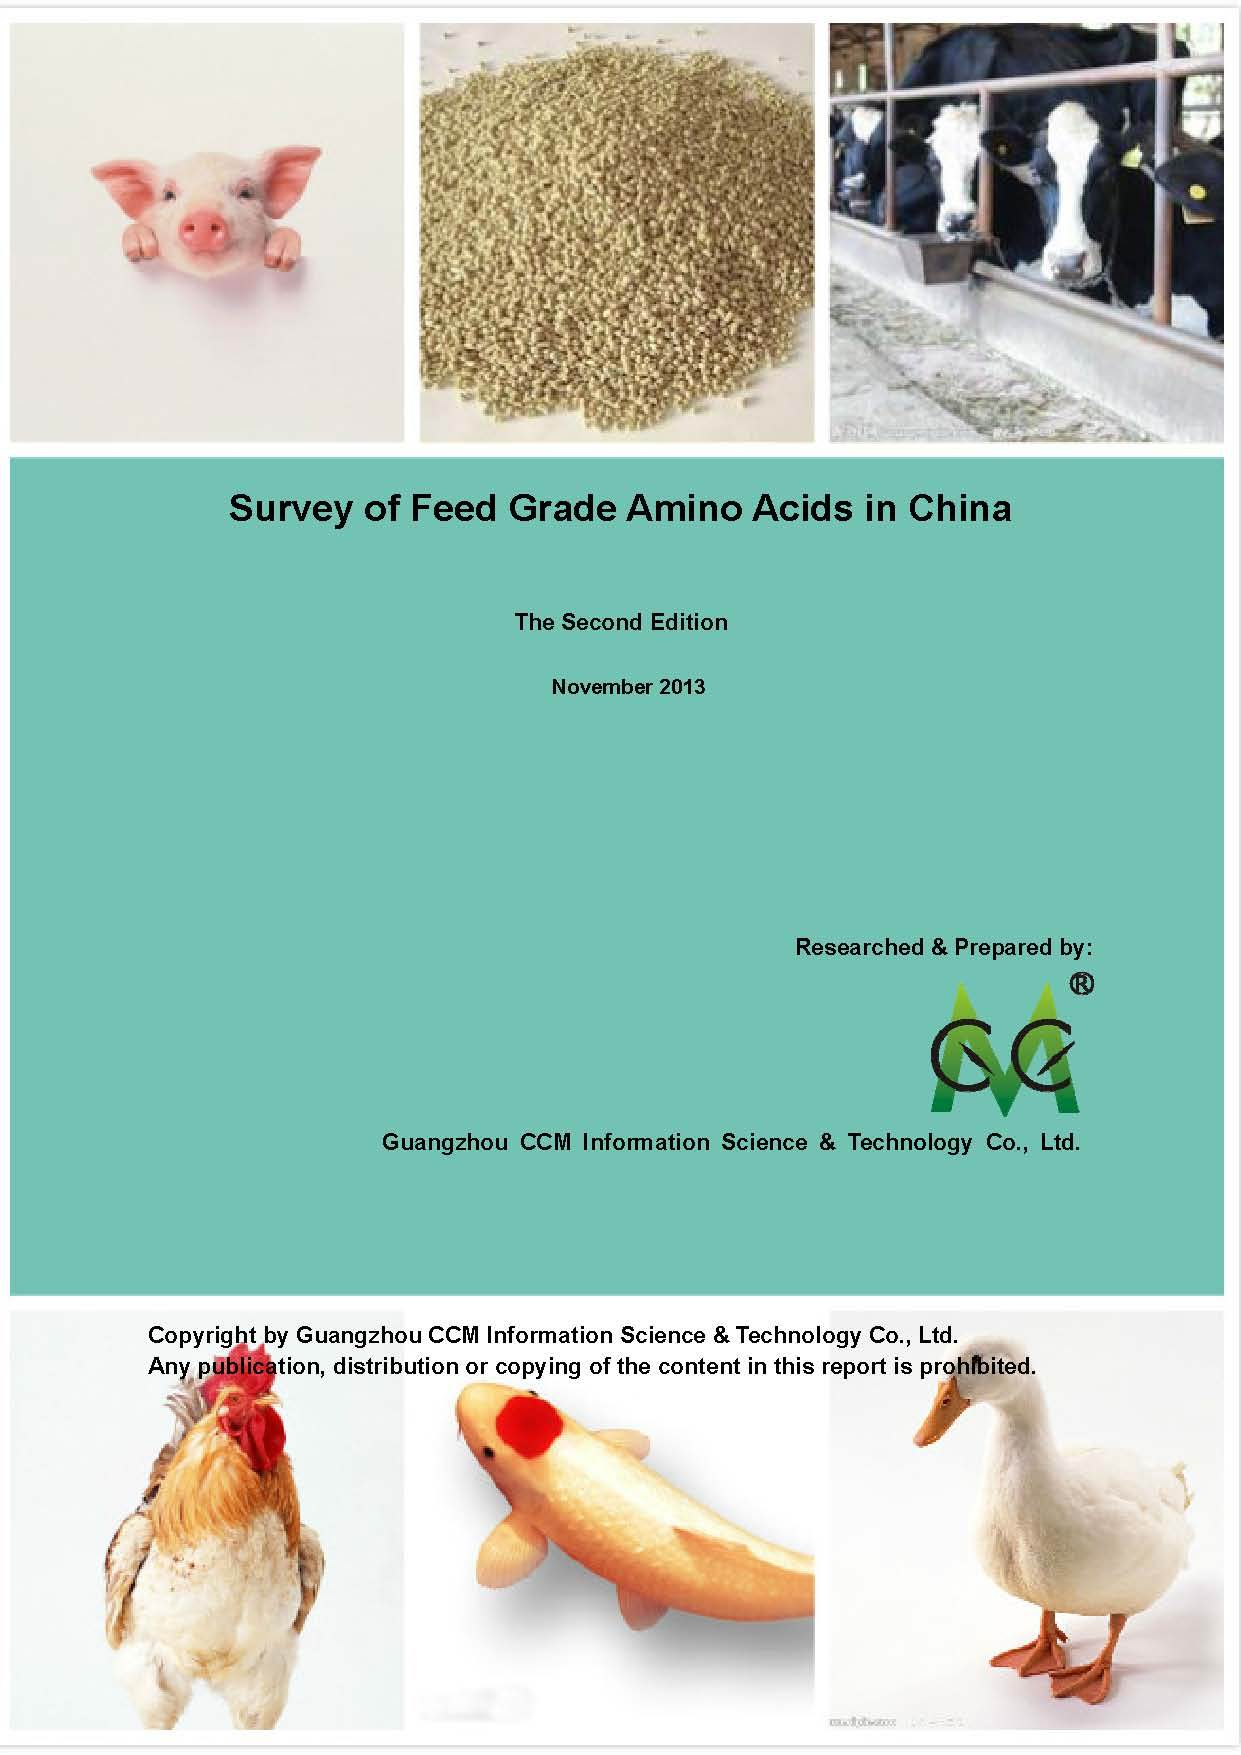 Survey of Feed Grade Amino Acids in China